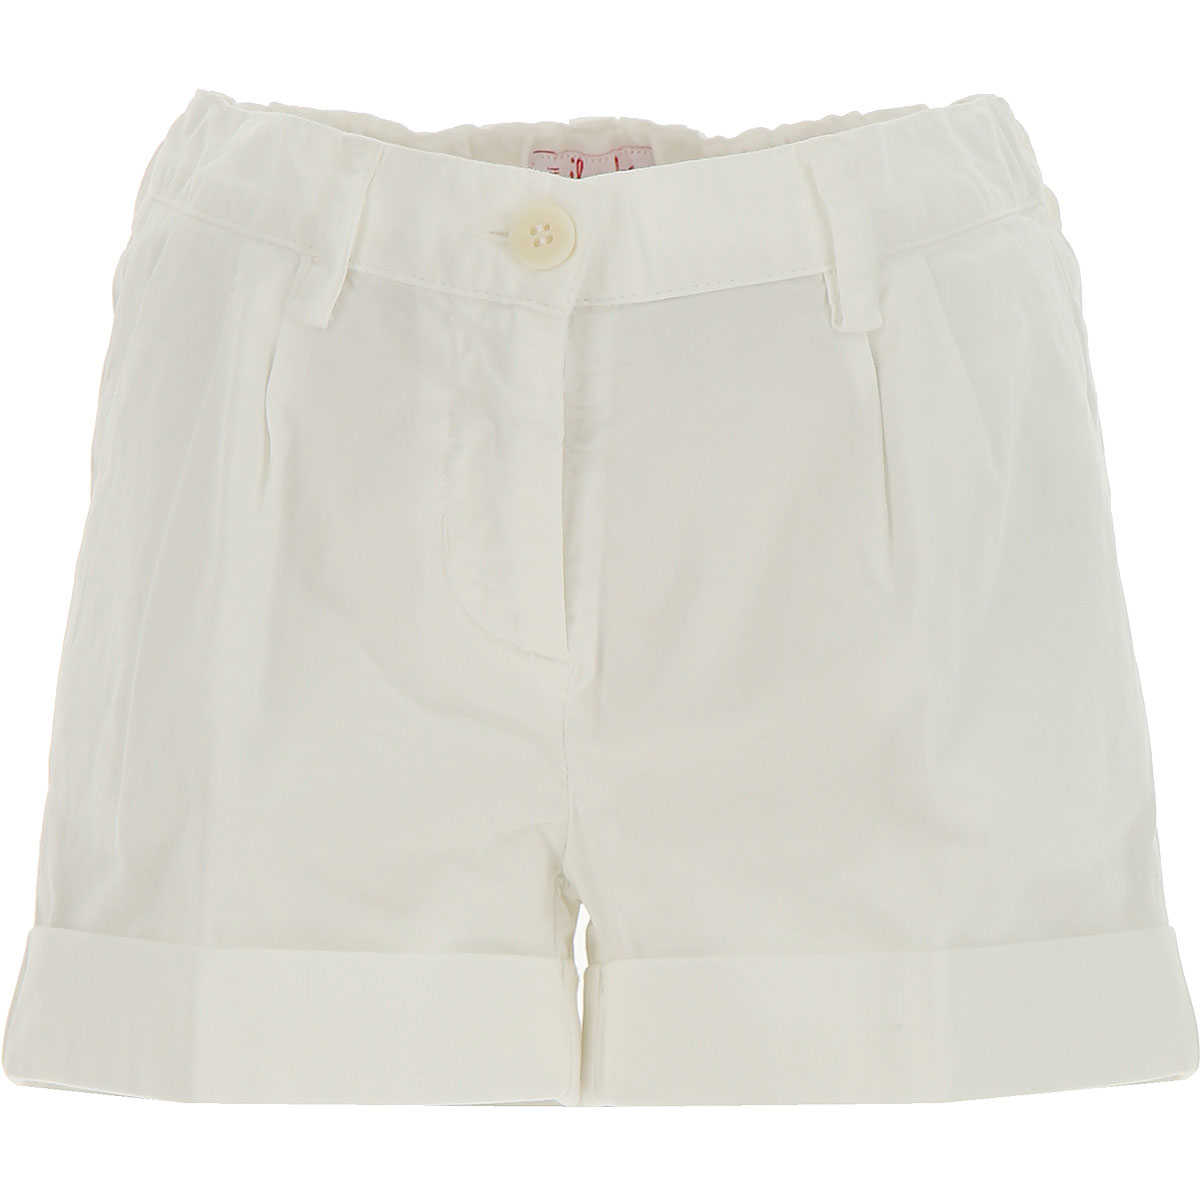 Il Gufo Kids Shorts for Girls in Outlet White USA - GOOFASH